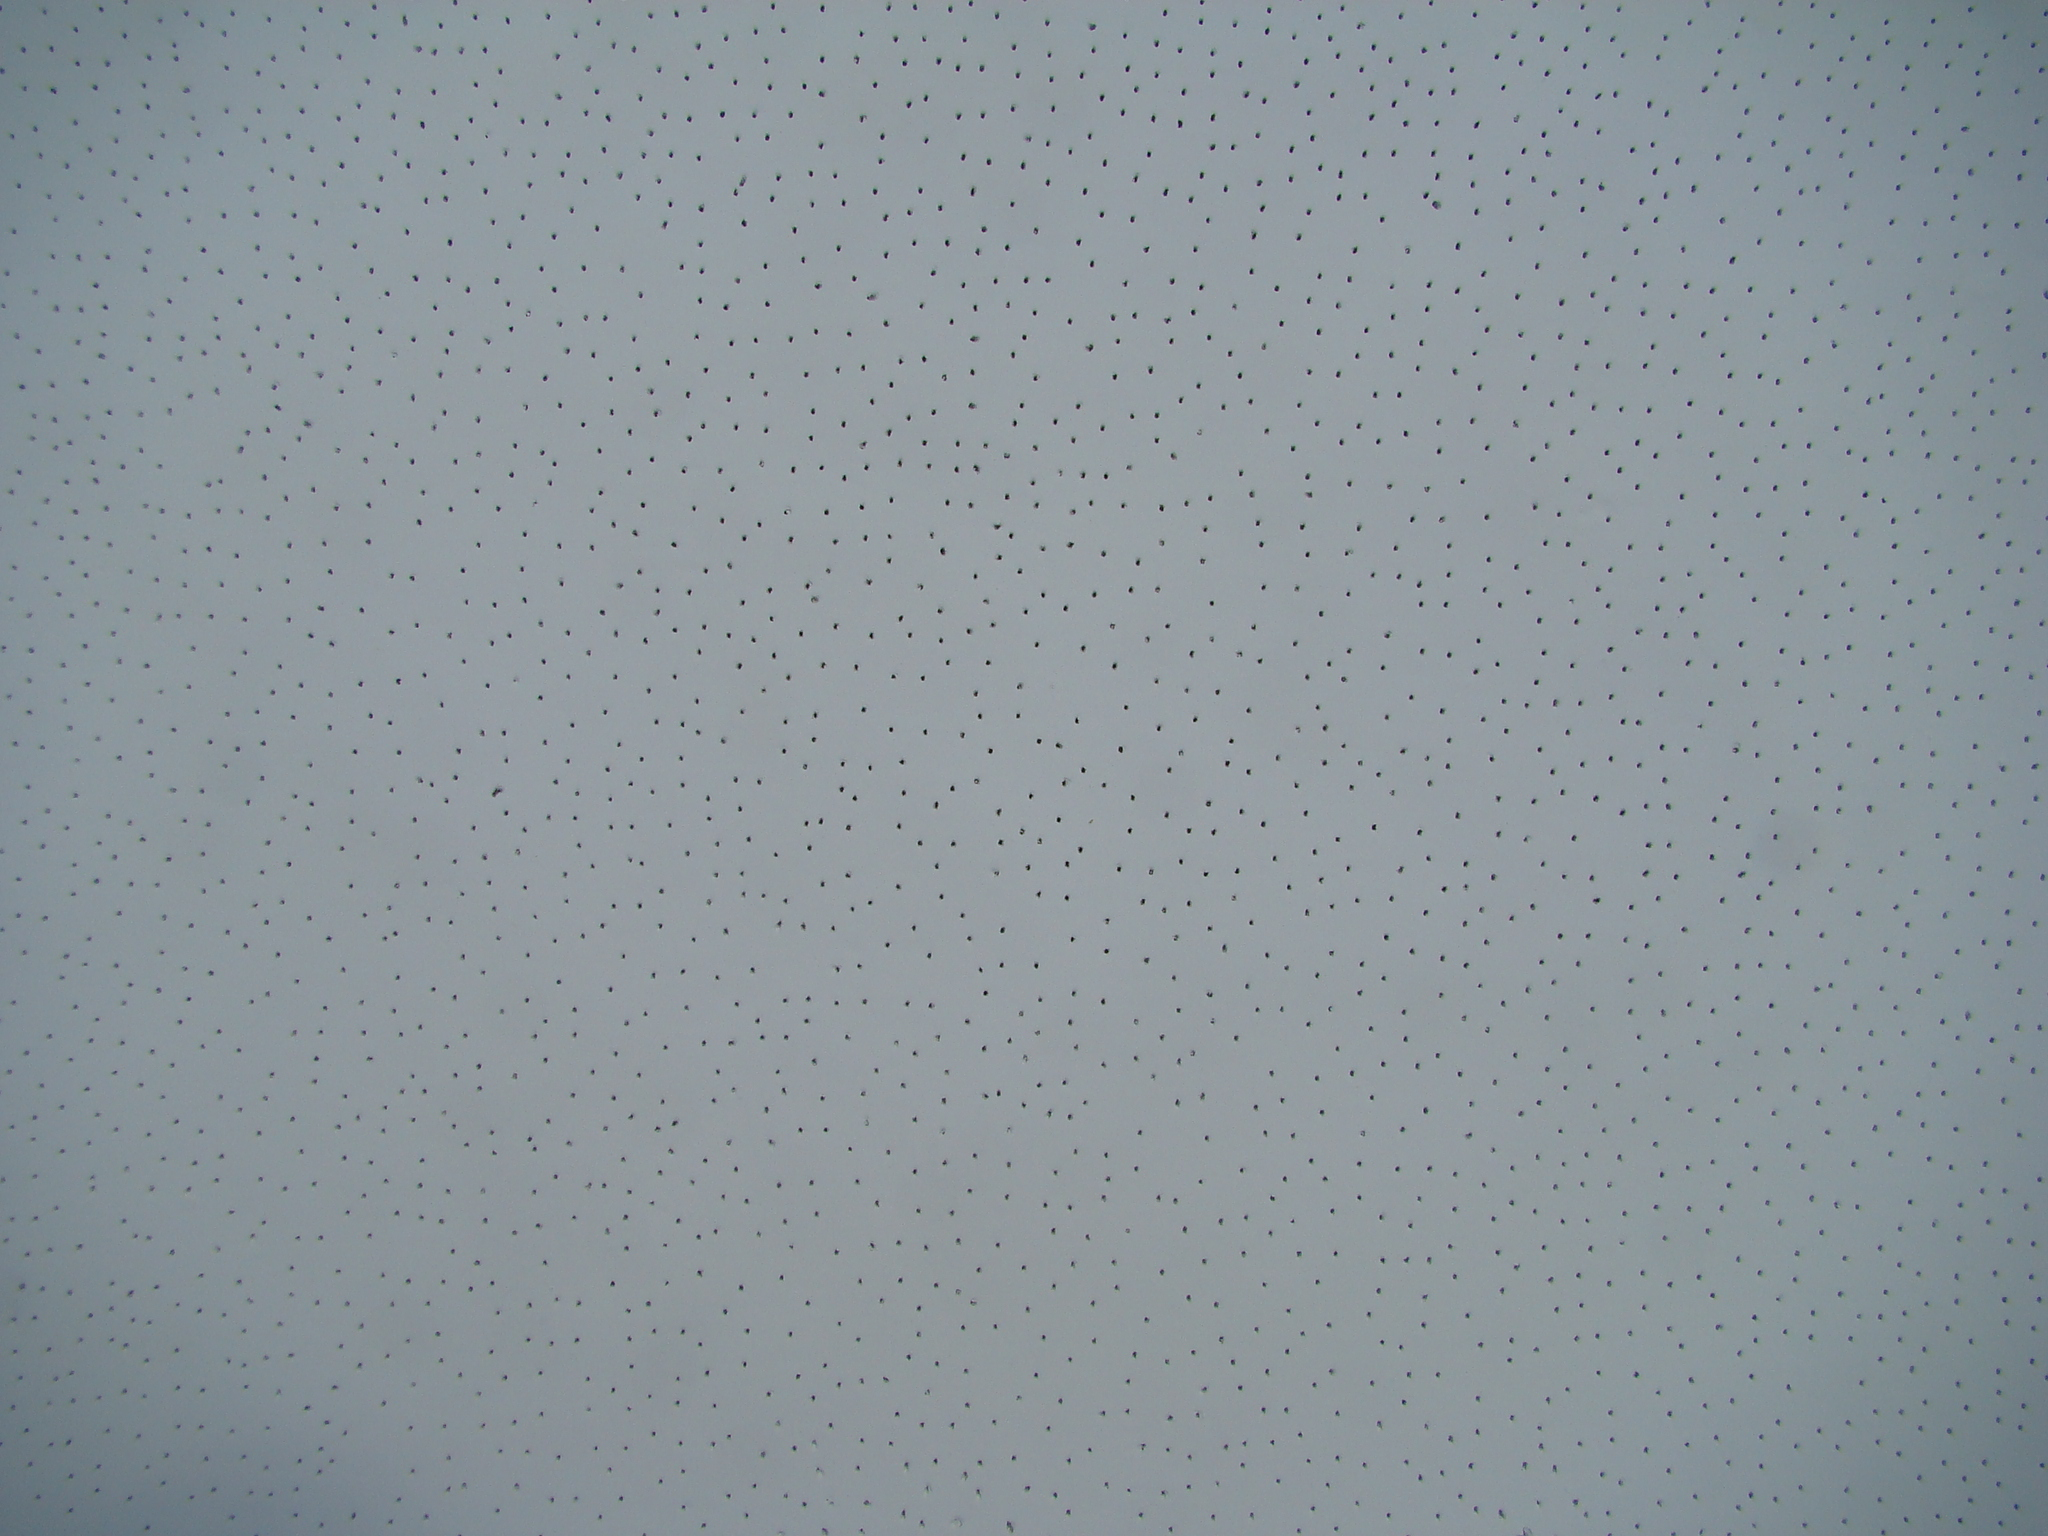 Mineral Fiber Ceiling - Perforated Textures